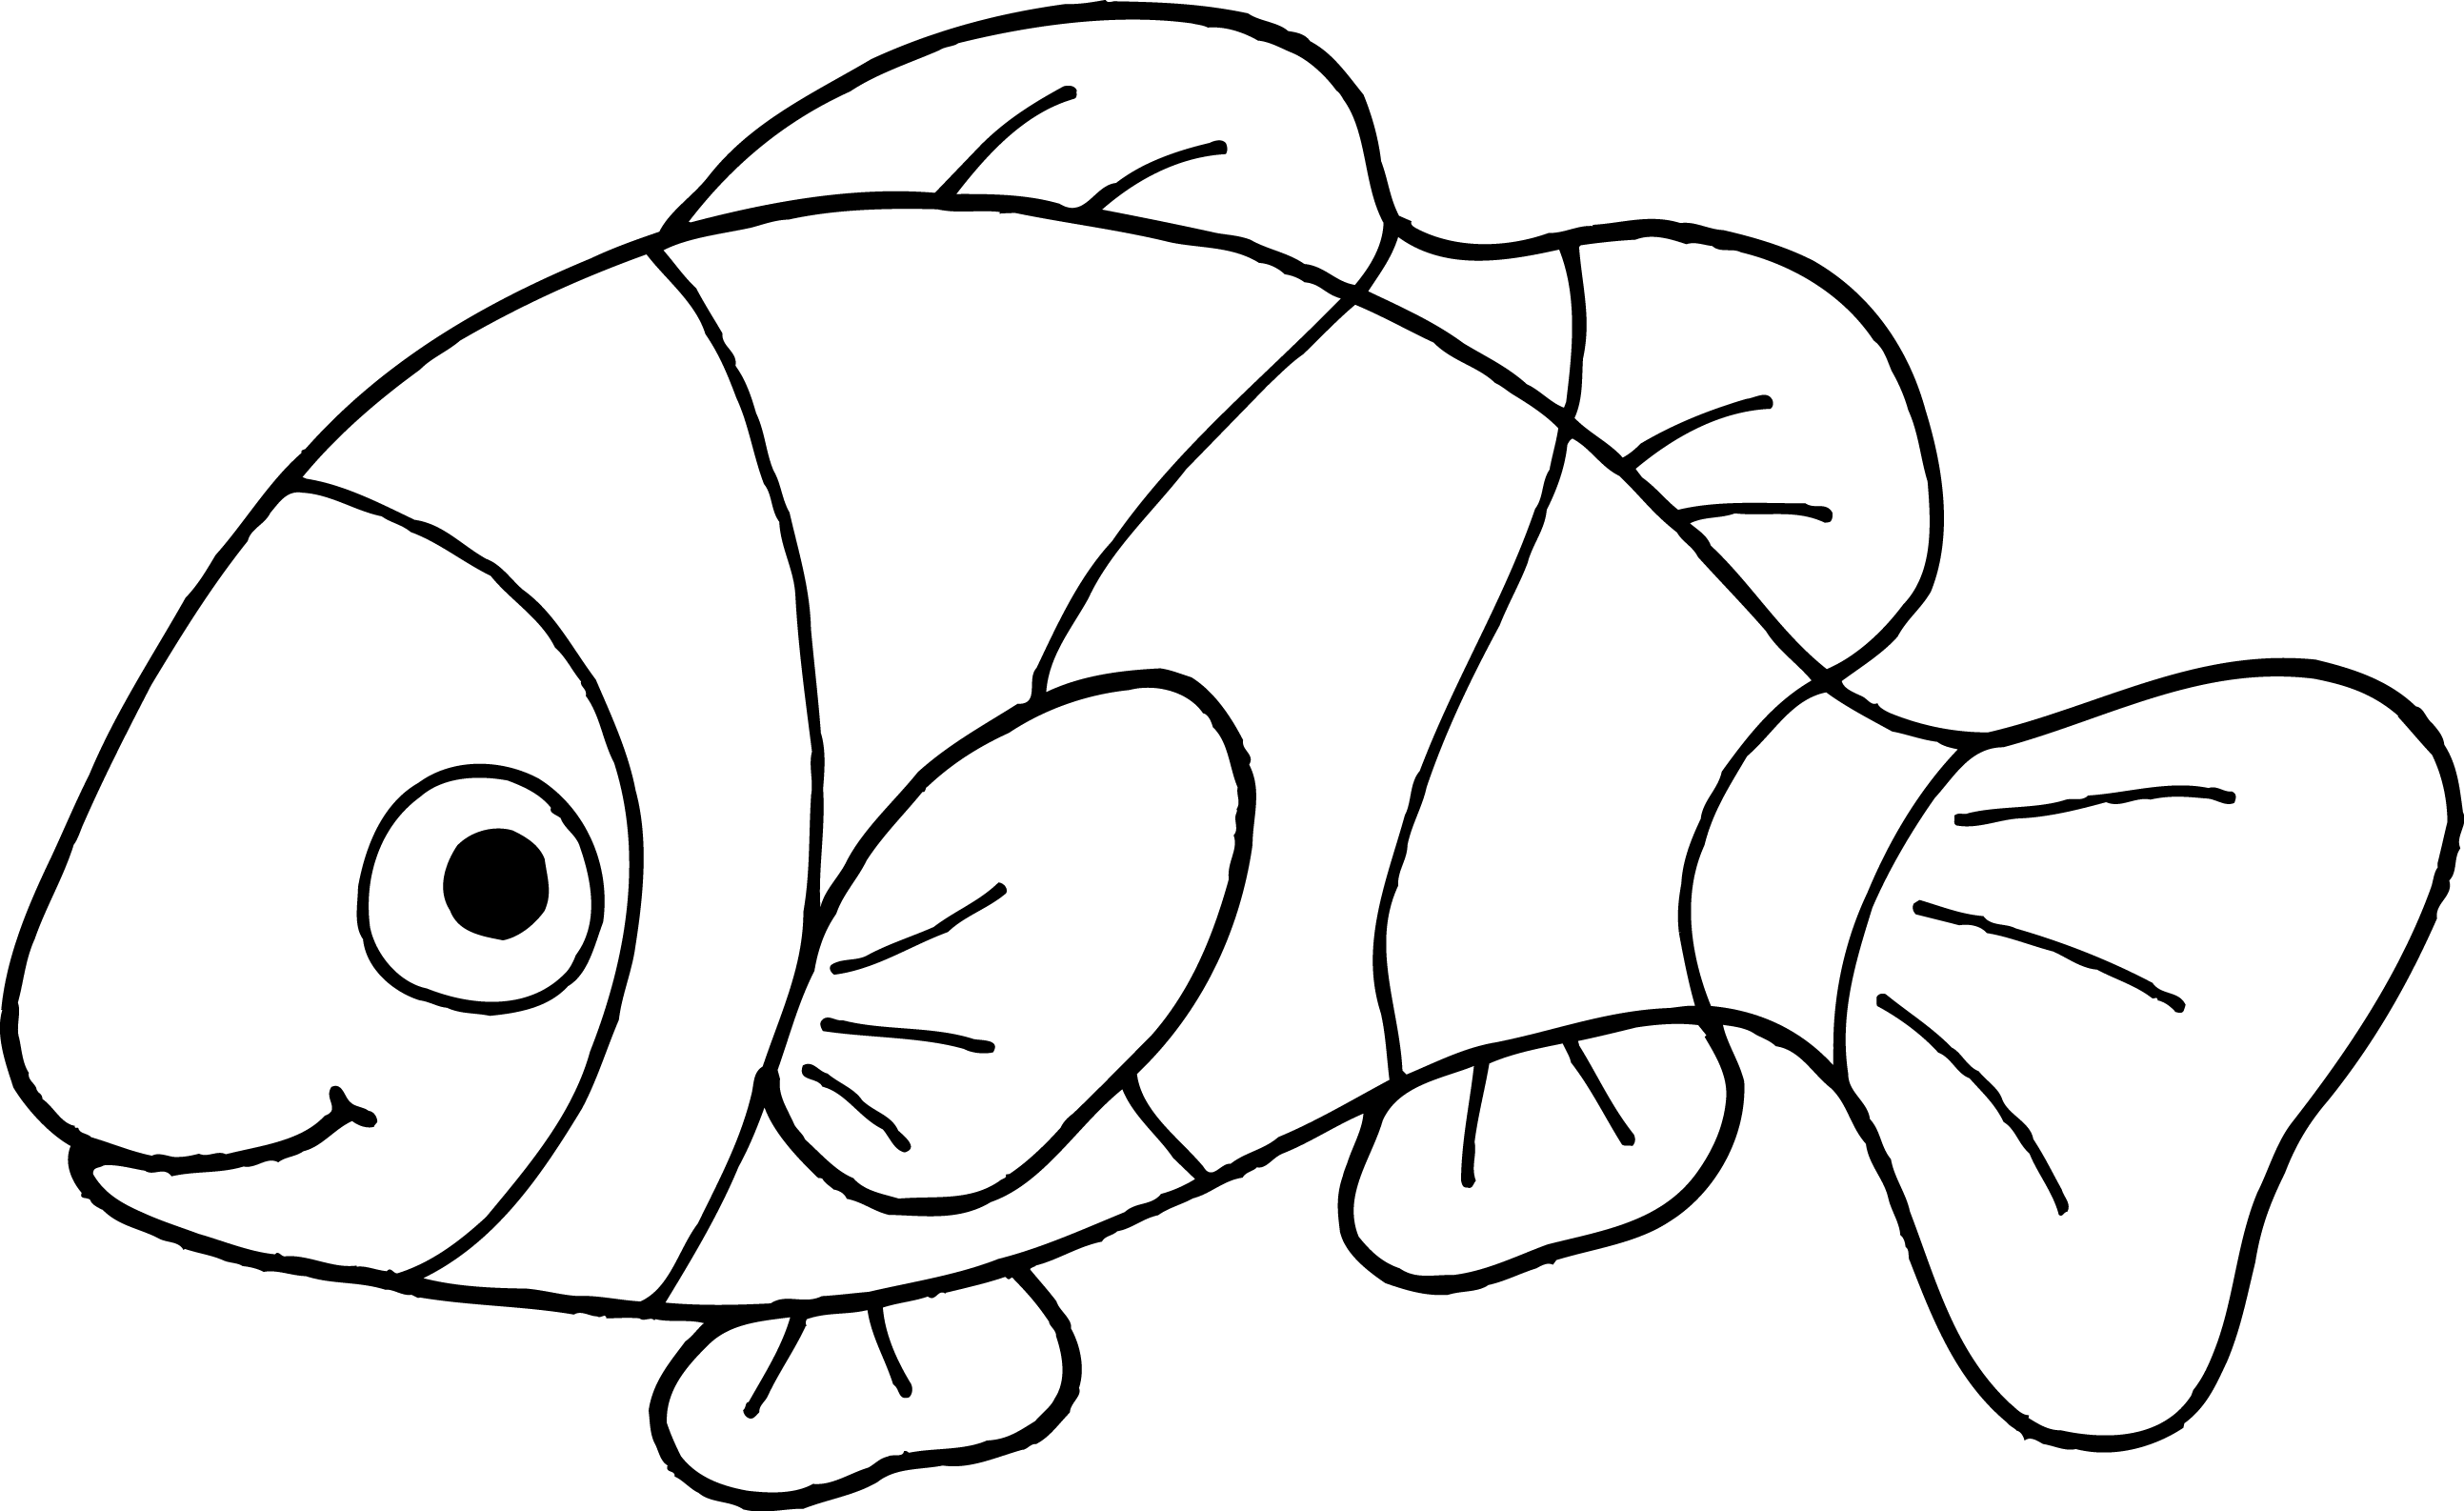 clipart black and white library Last chance clown fish. Seafood clipart clam